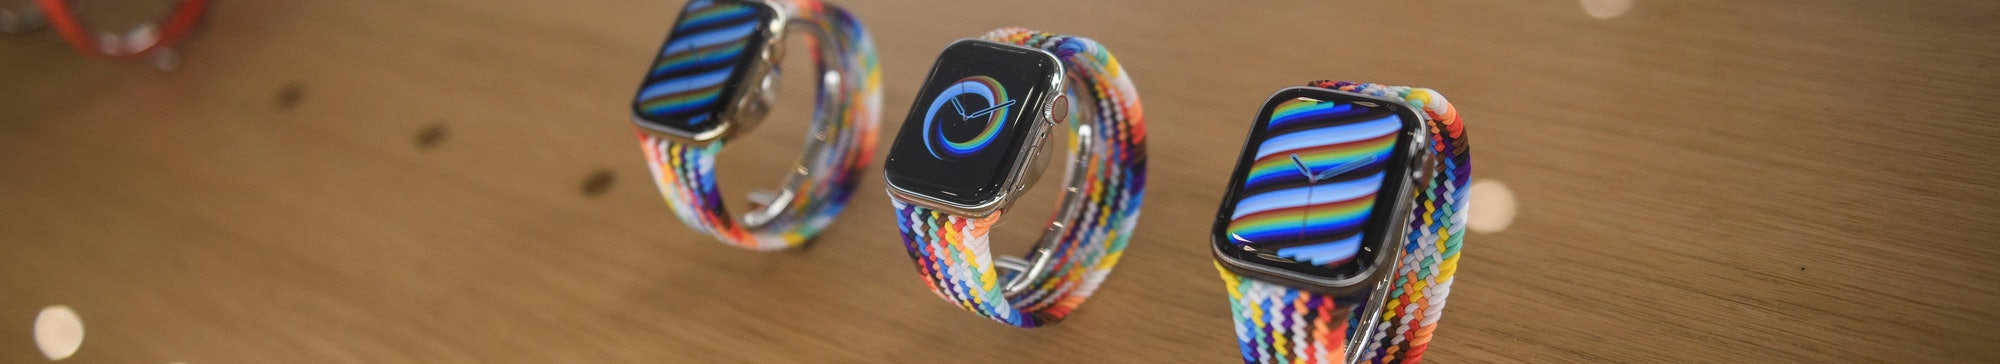 ROME, ITALY - MAY 27: A general view shows Apple Inc. iWatch during the official opening of the new ...